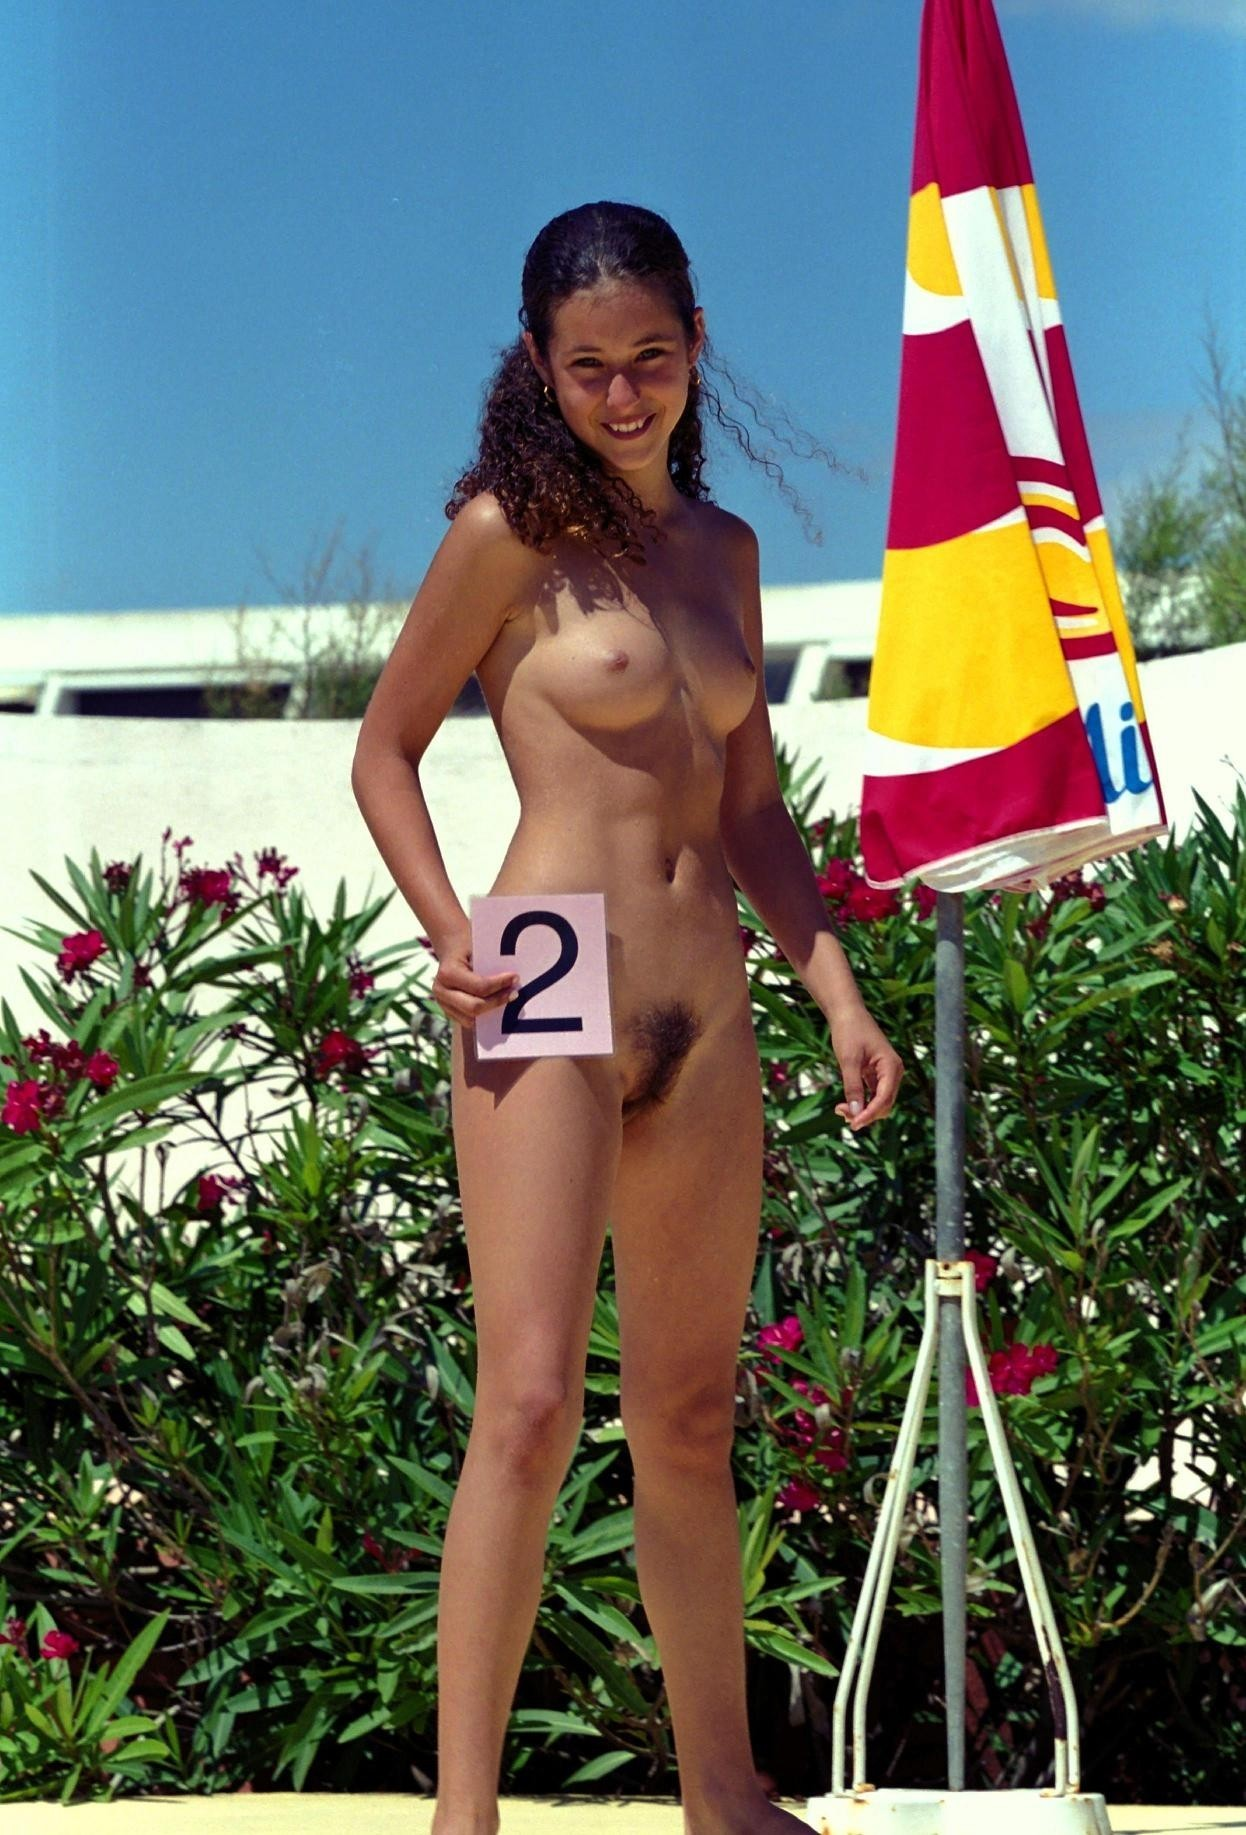 Jr miss beauty pageant nude